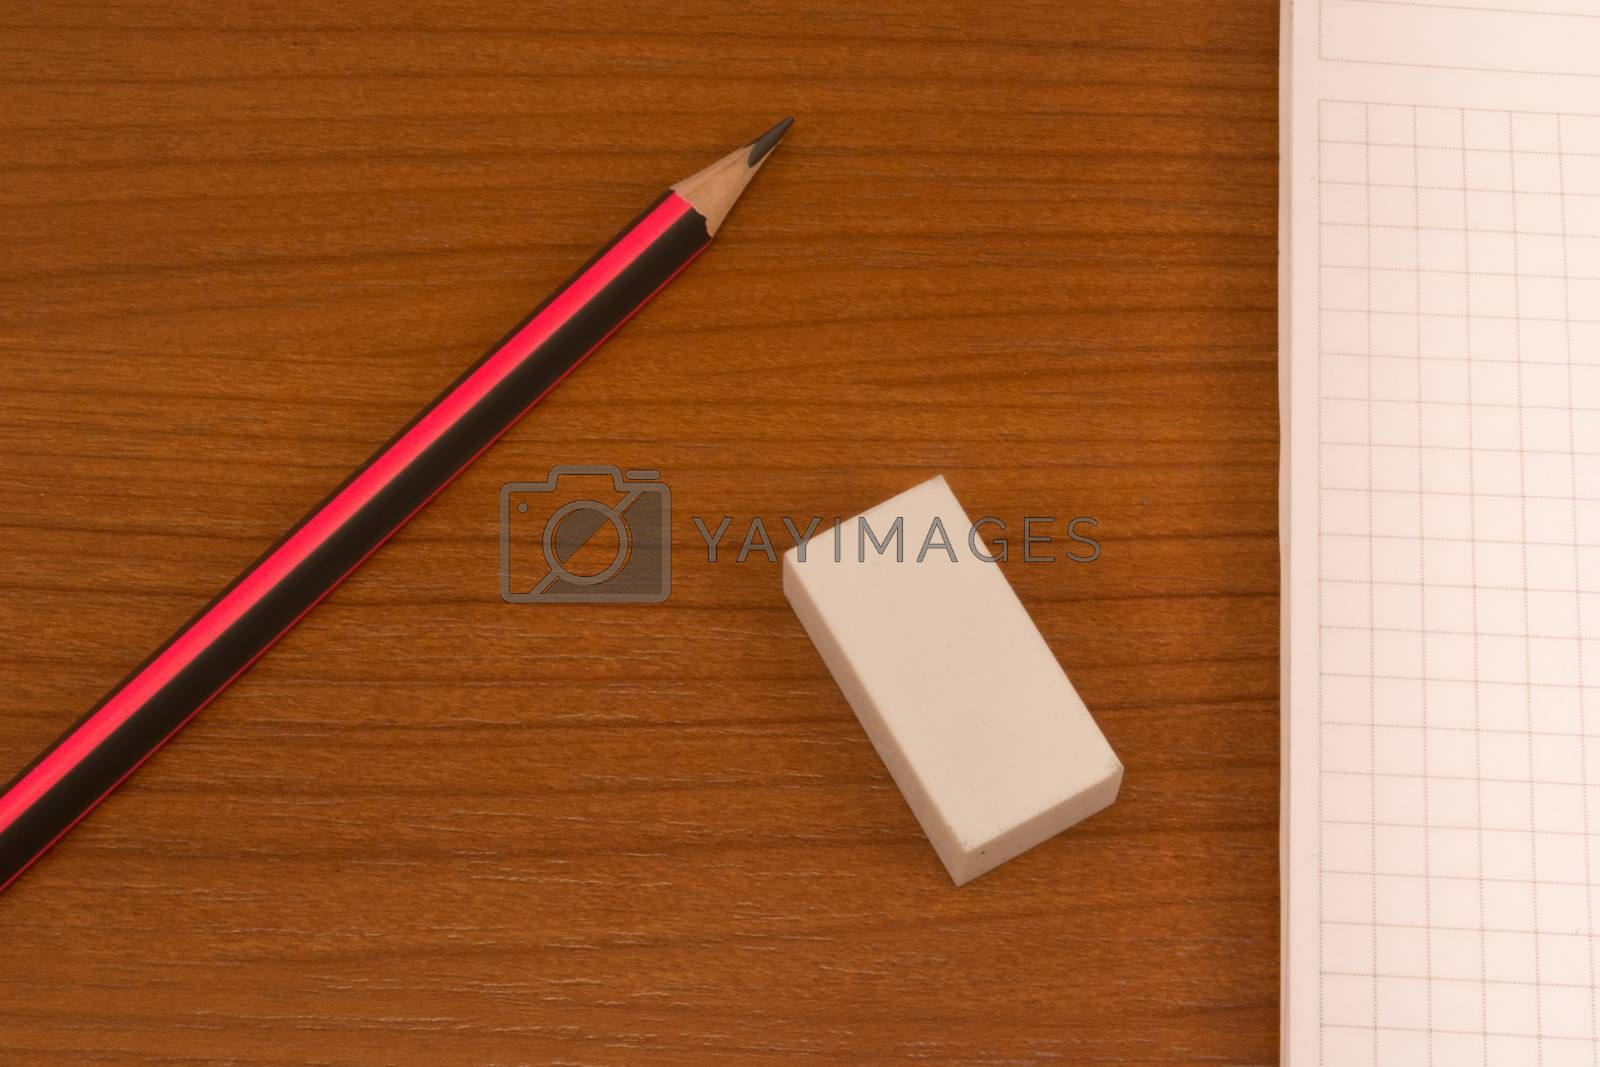 Wooden table with pencil, notebook and eraser